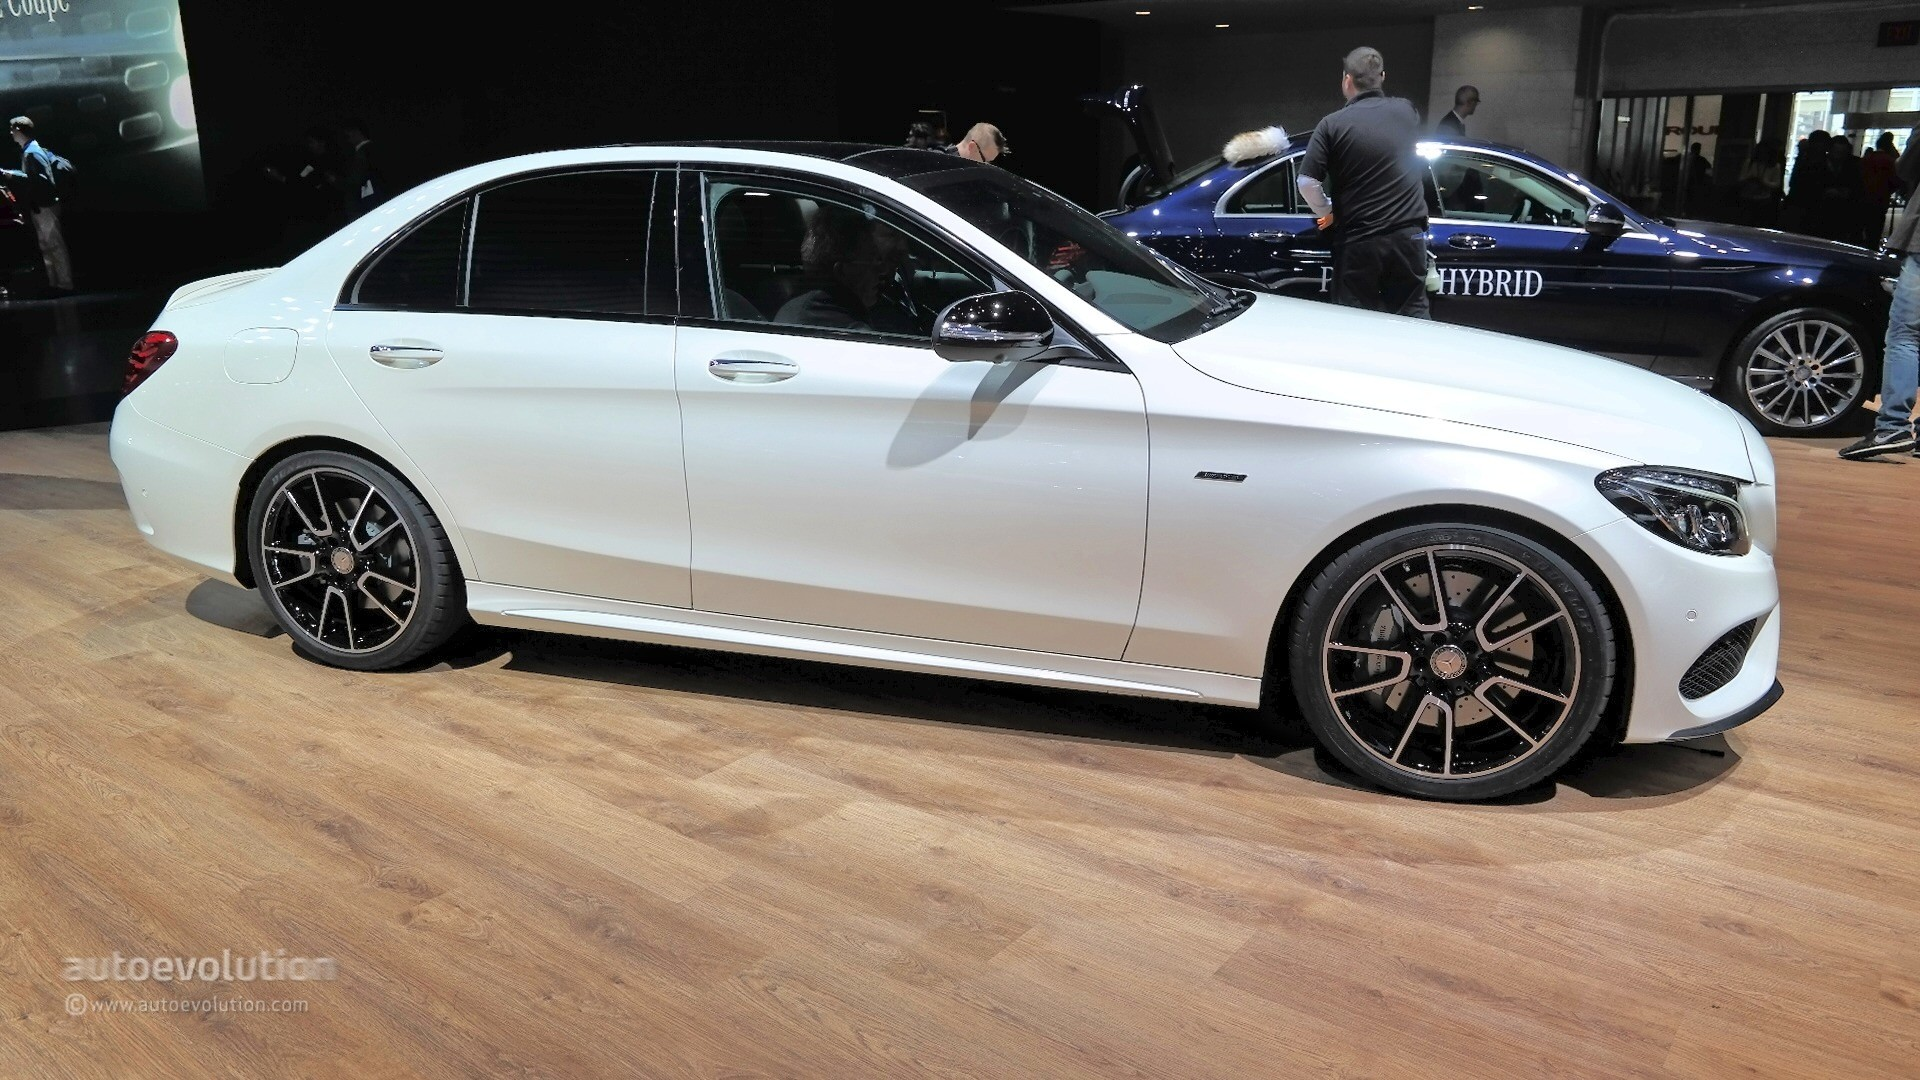 Mercedes benz c450 amg sport looks ordinary at 2015 for Mercedes benz c450